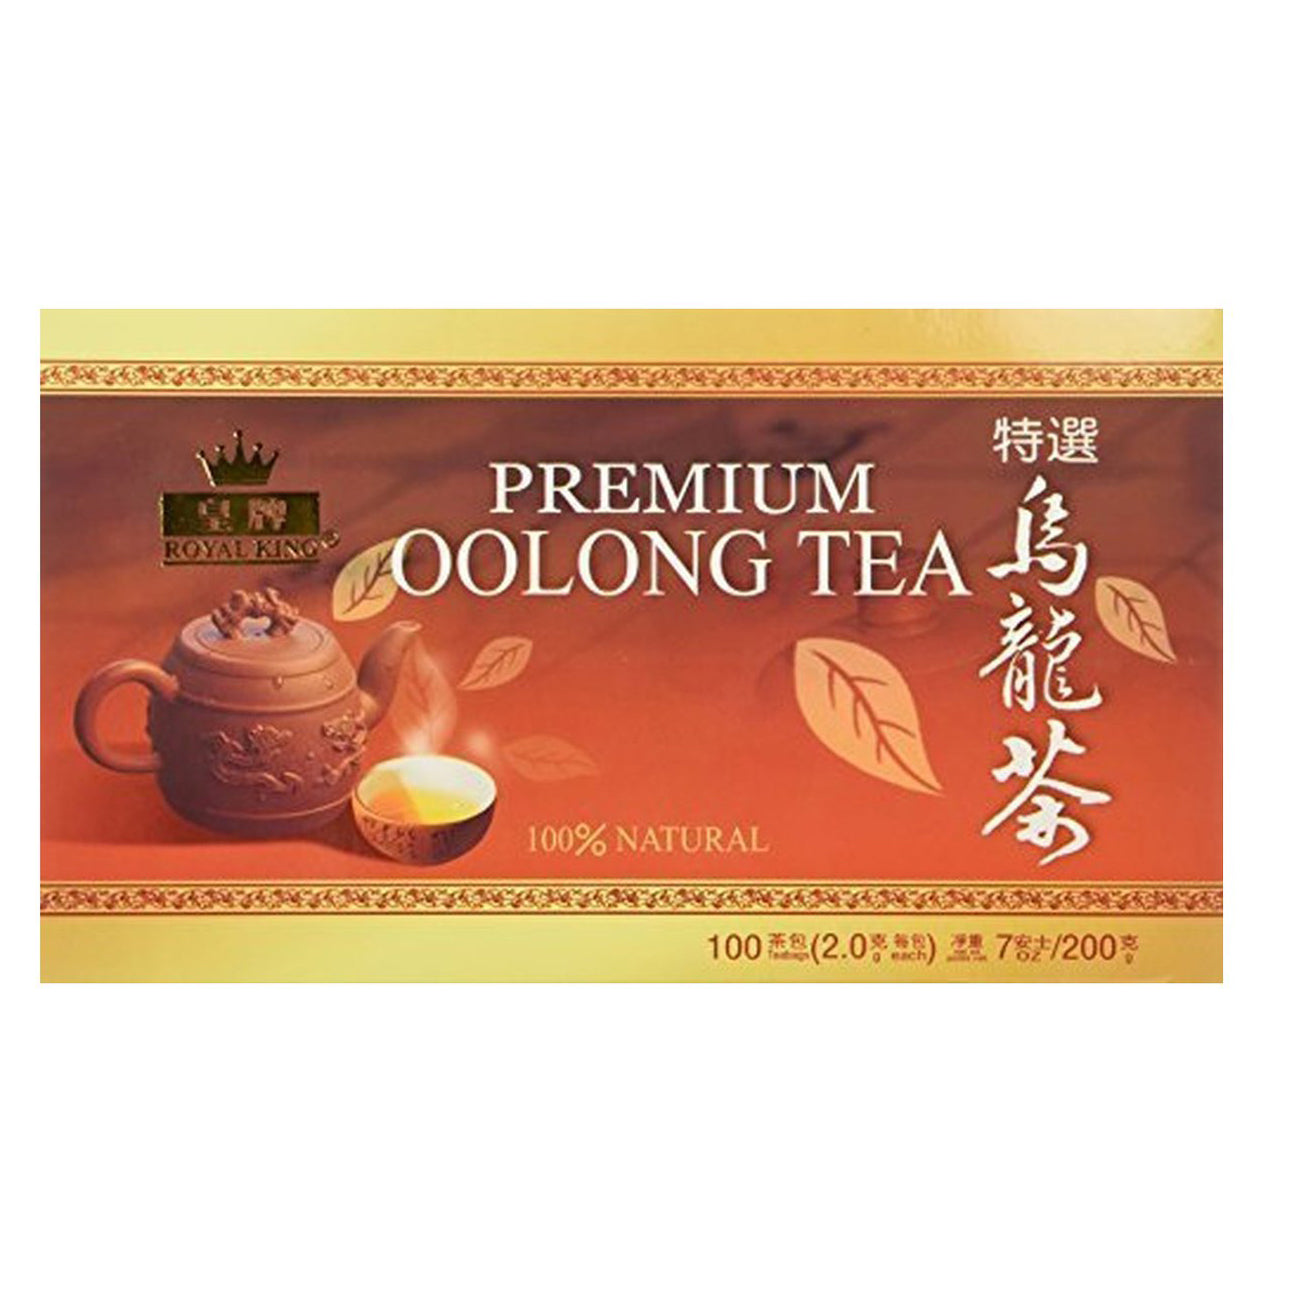 Royal King Premium Oolong Tea 100% Natural 100 Tea Bags 7 Oz (200 g)